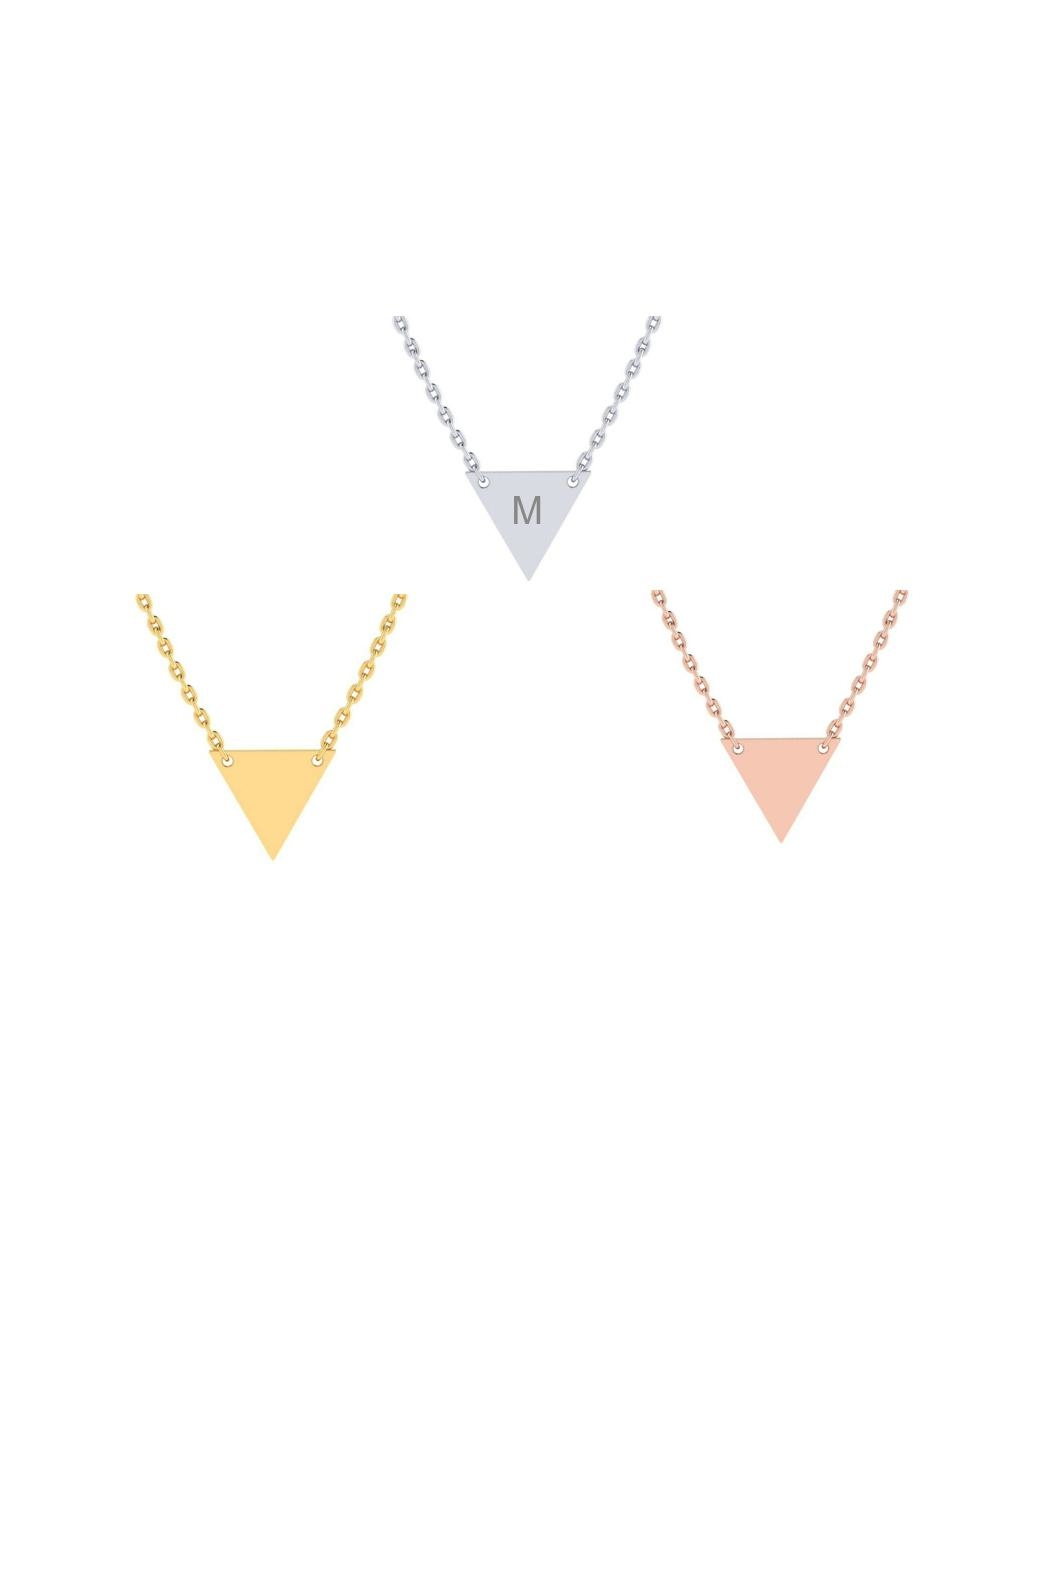 6th Borough Boutique Engraved Triangle Necklace - Main Image